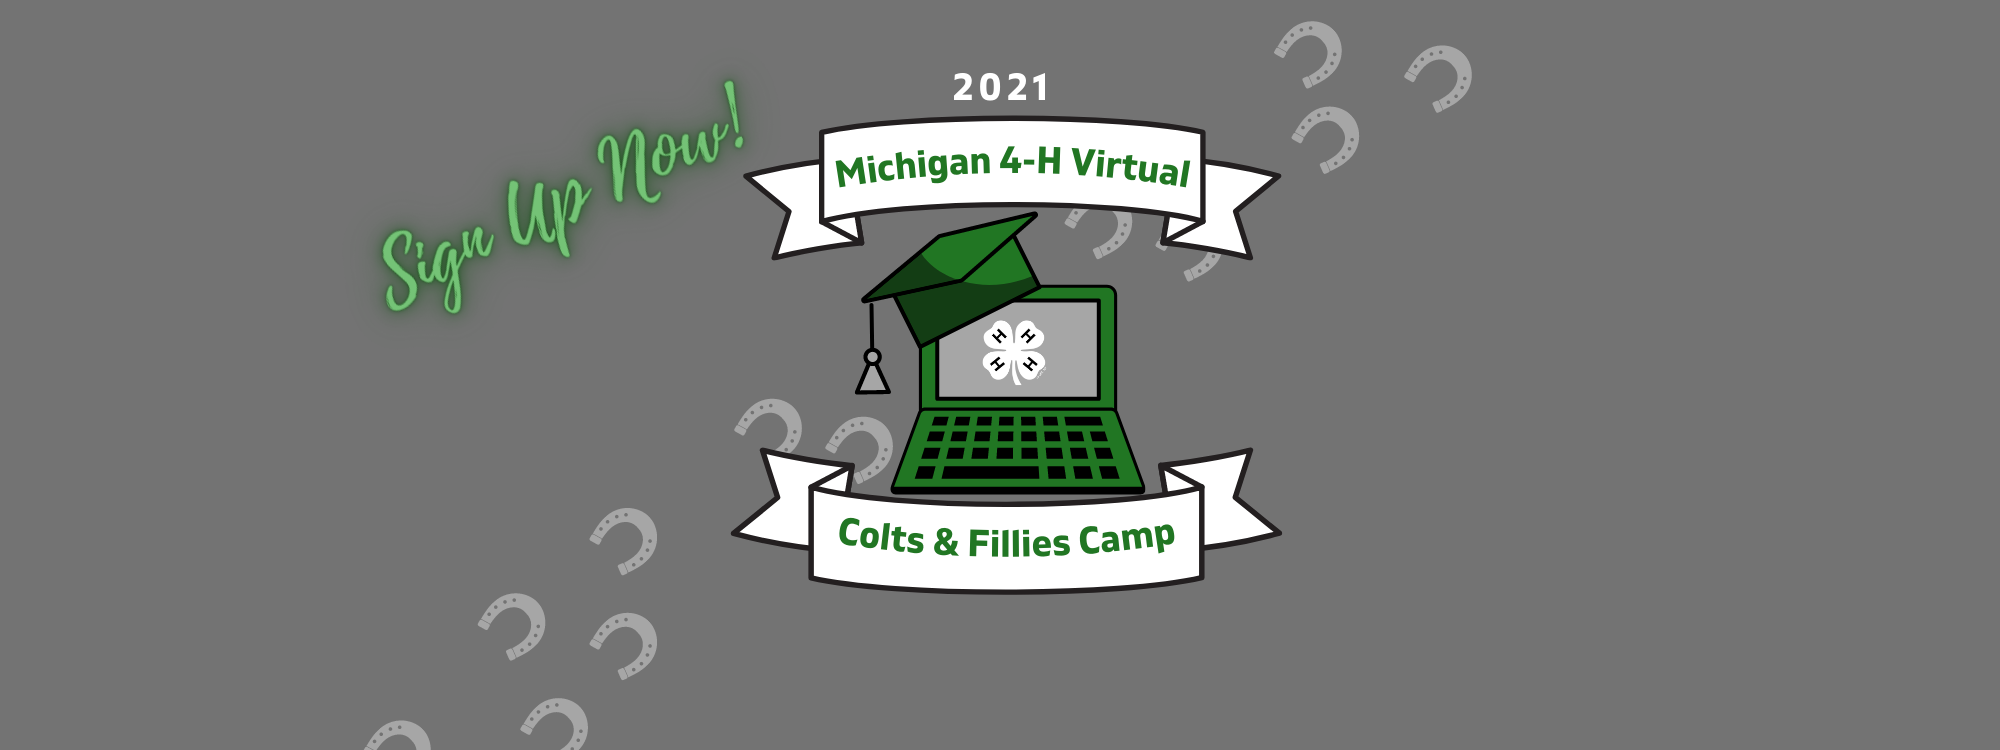 Sign up now - 2021 Michigan 4-H Virtual Colts and Fillies Camp